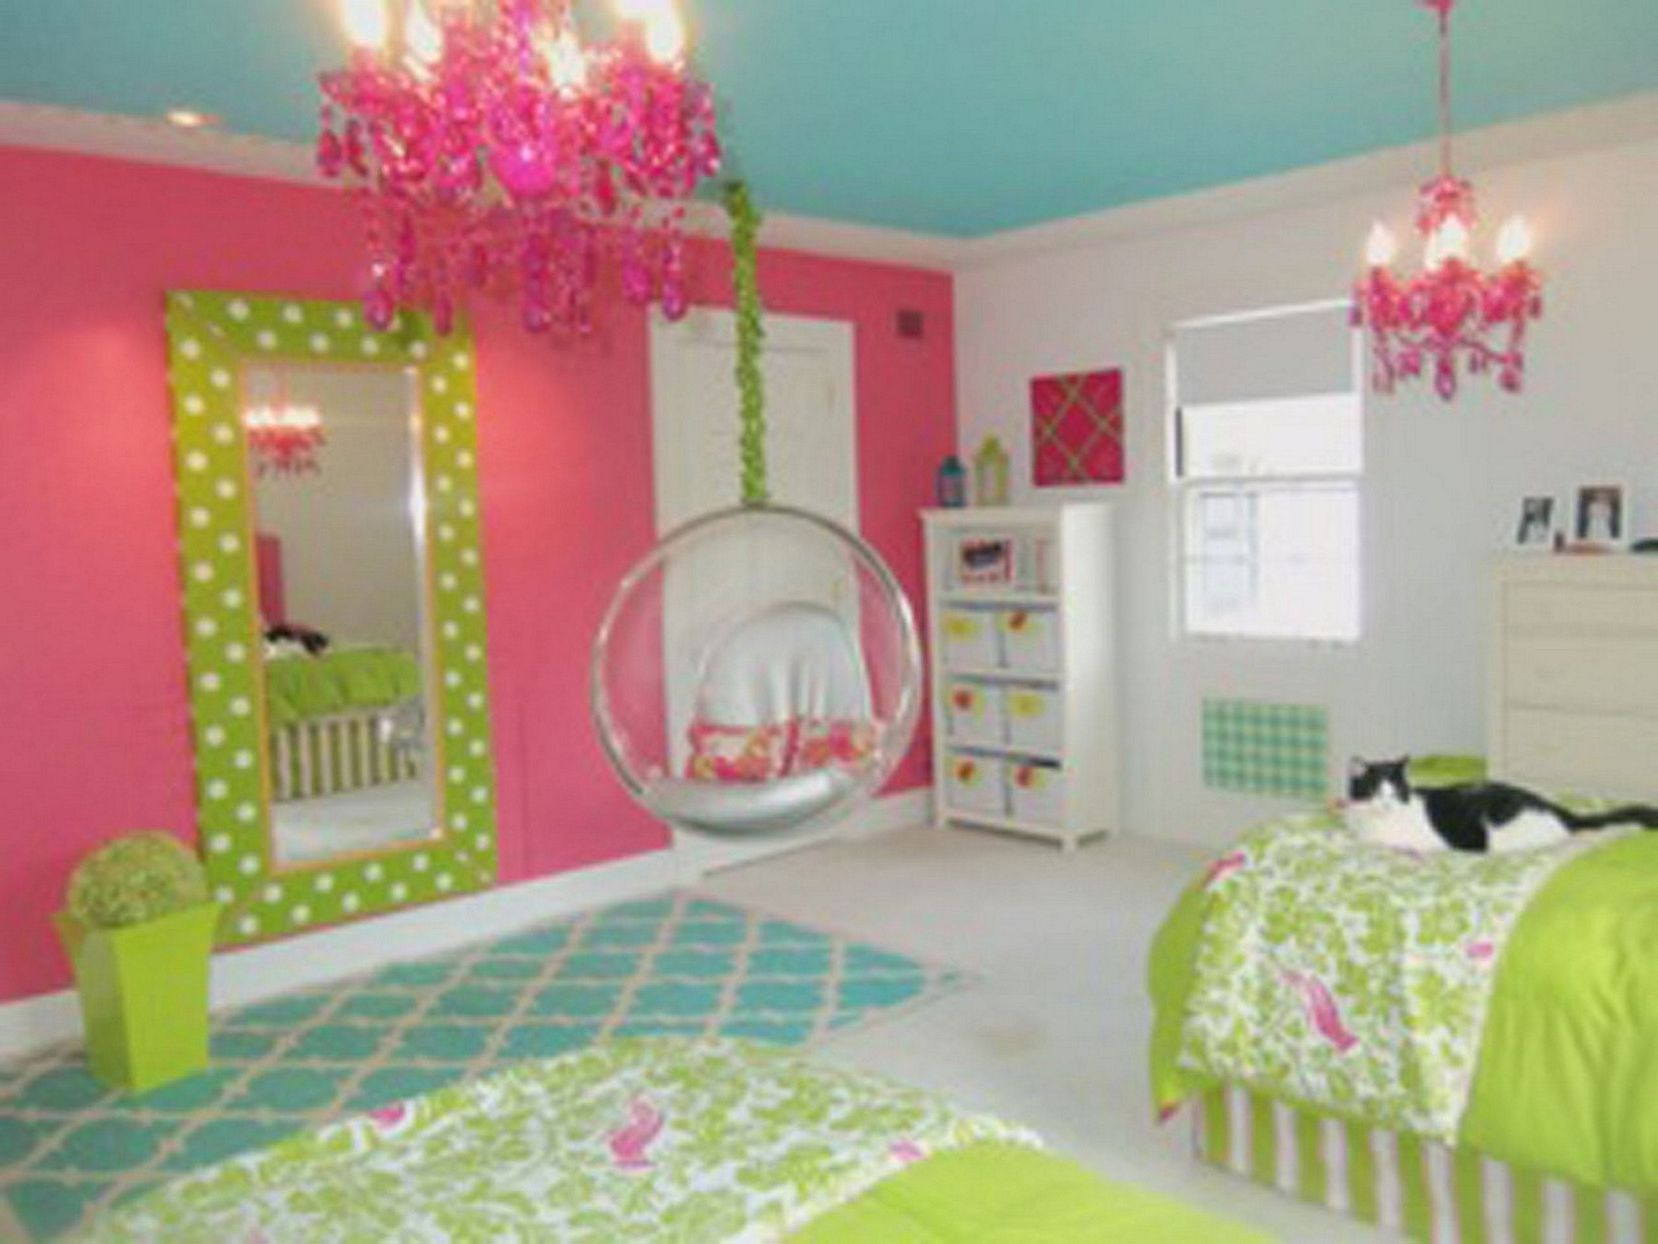 Room Decor Ideas For Teens teens room girls bedroom ideas teenage girl diy decor for pictures